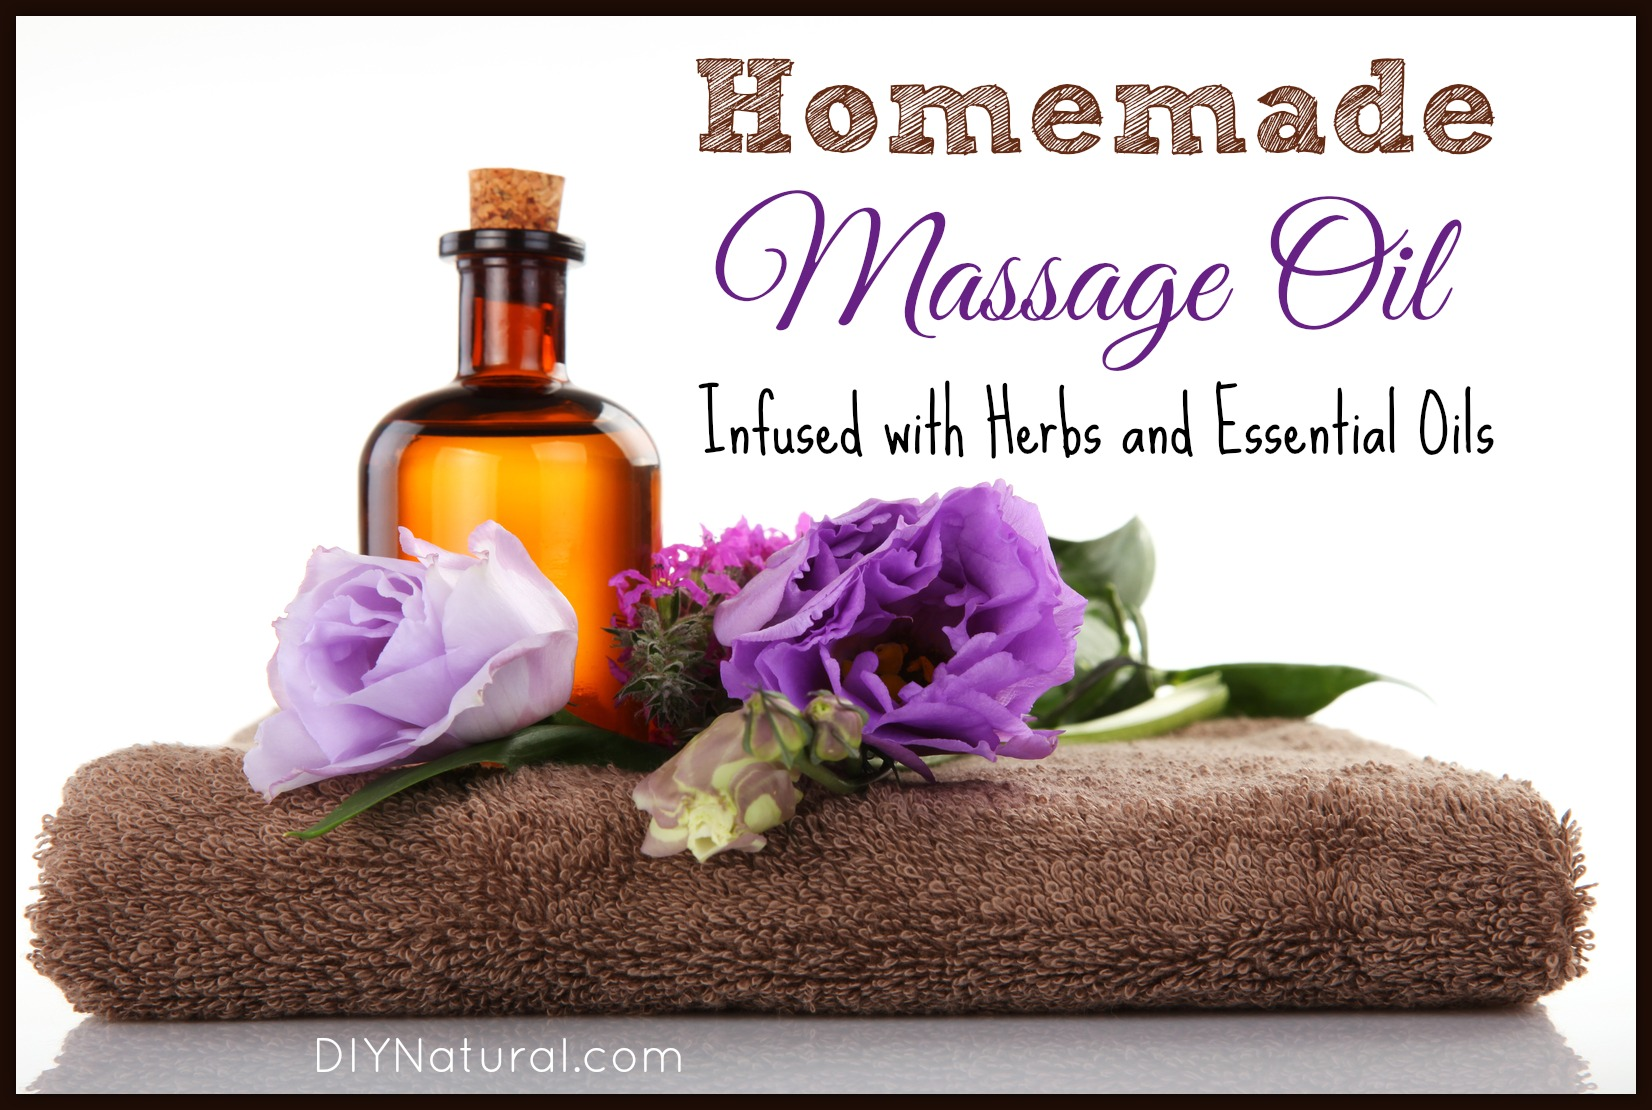 Homemade Massage Oil - Infused with Herbs and Essential Oils